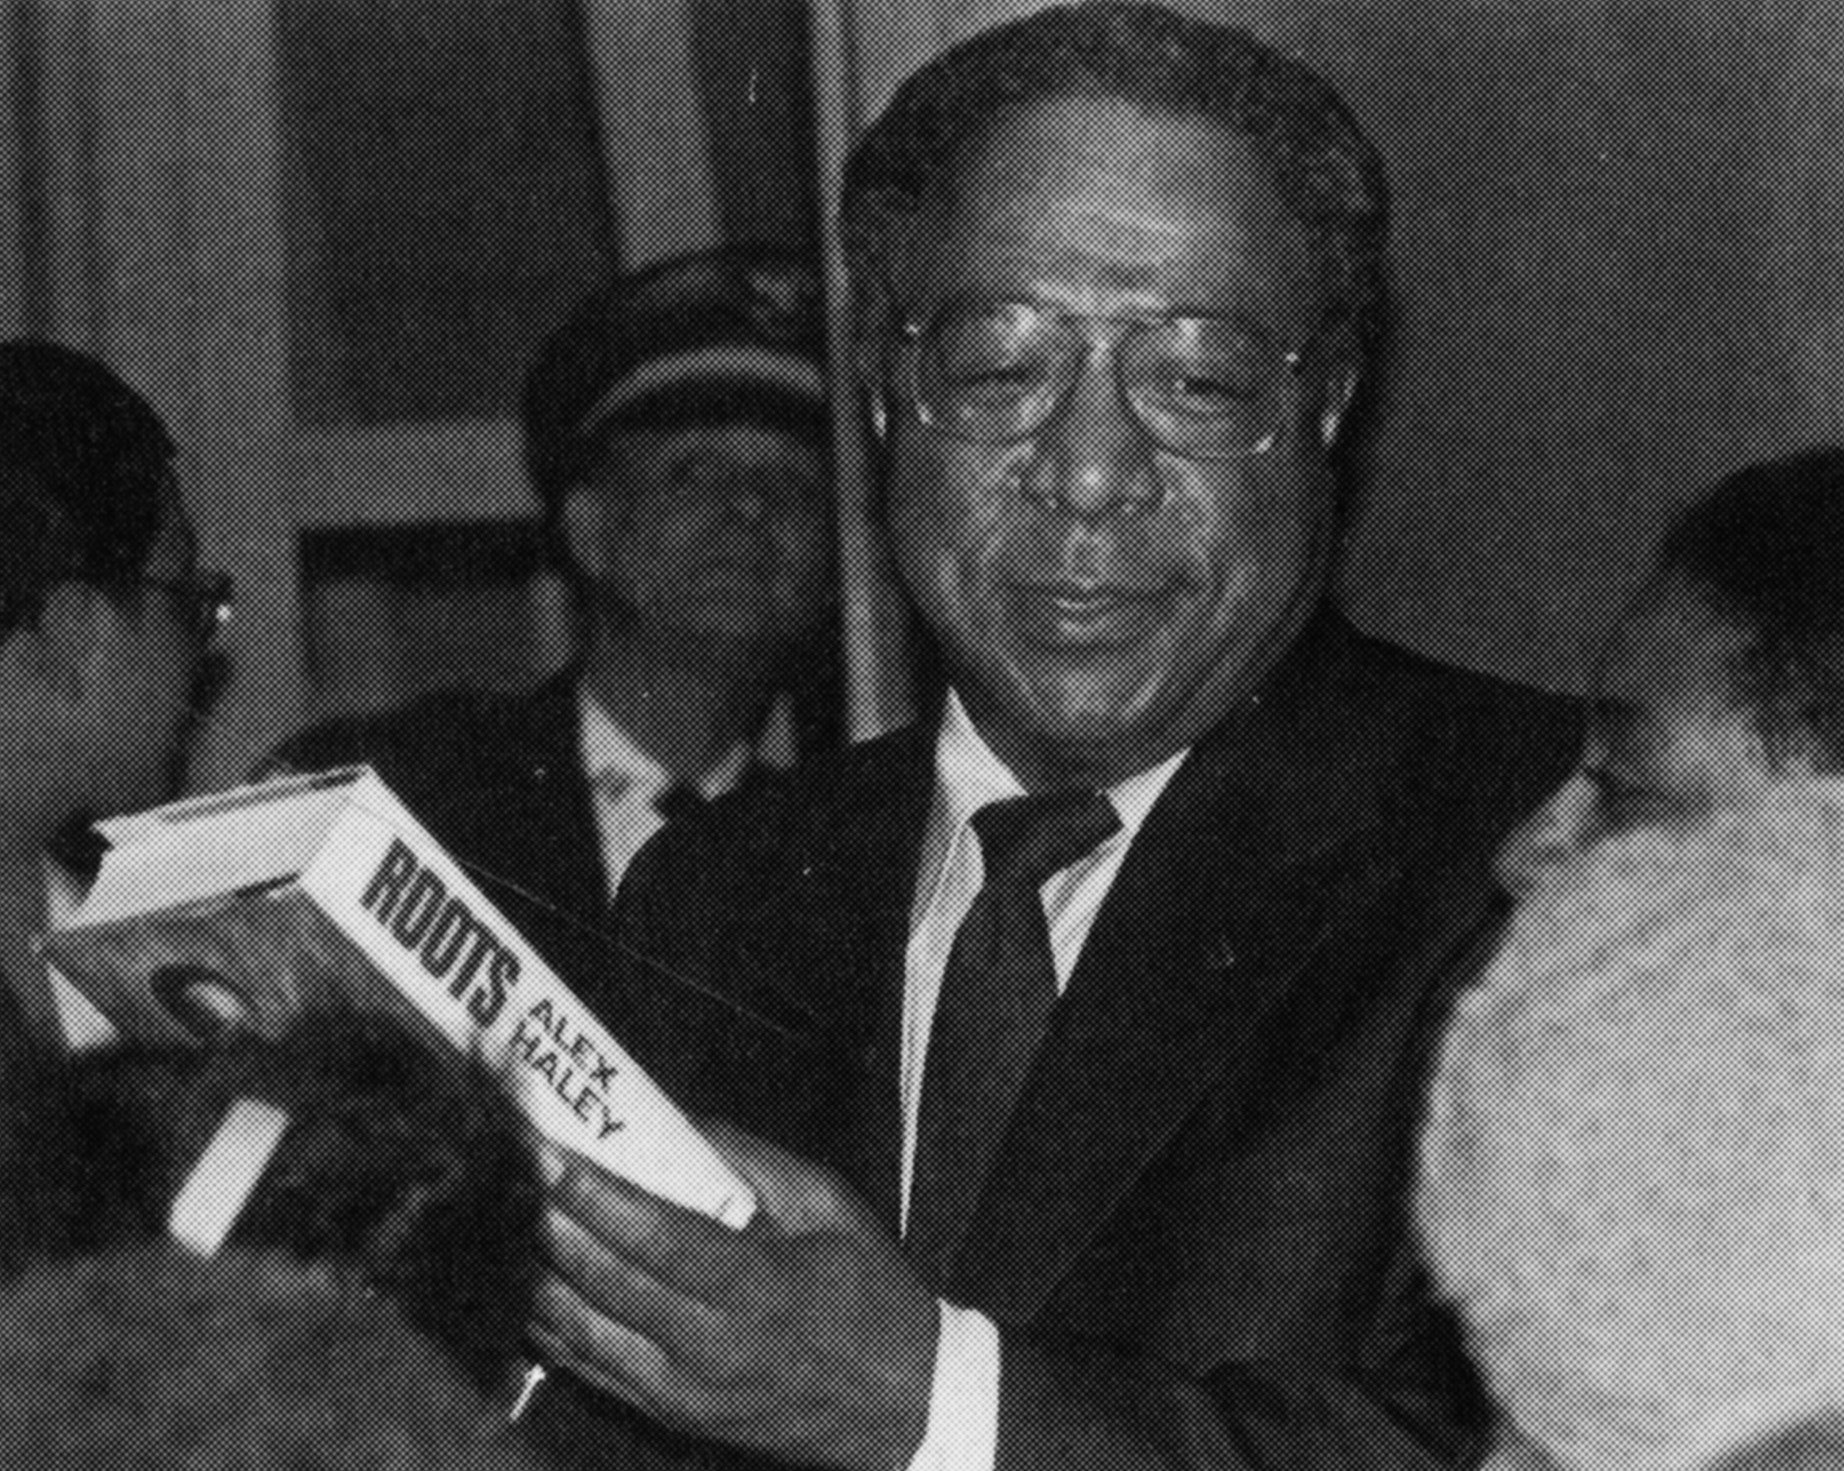 Alex Haley speaking at University of Texas at Arlington's Texas Hall in 1980. | Photo: University of Texas at Arlington Photograph Collection, CC BY 4.0, Wikimedia Commons Images